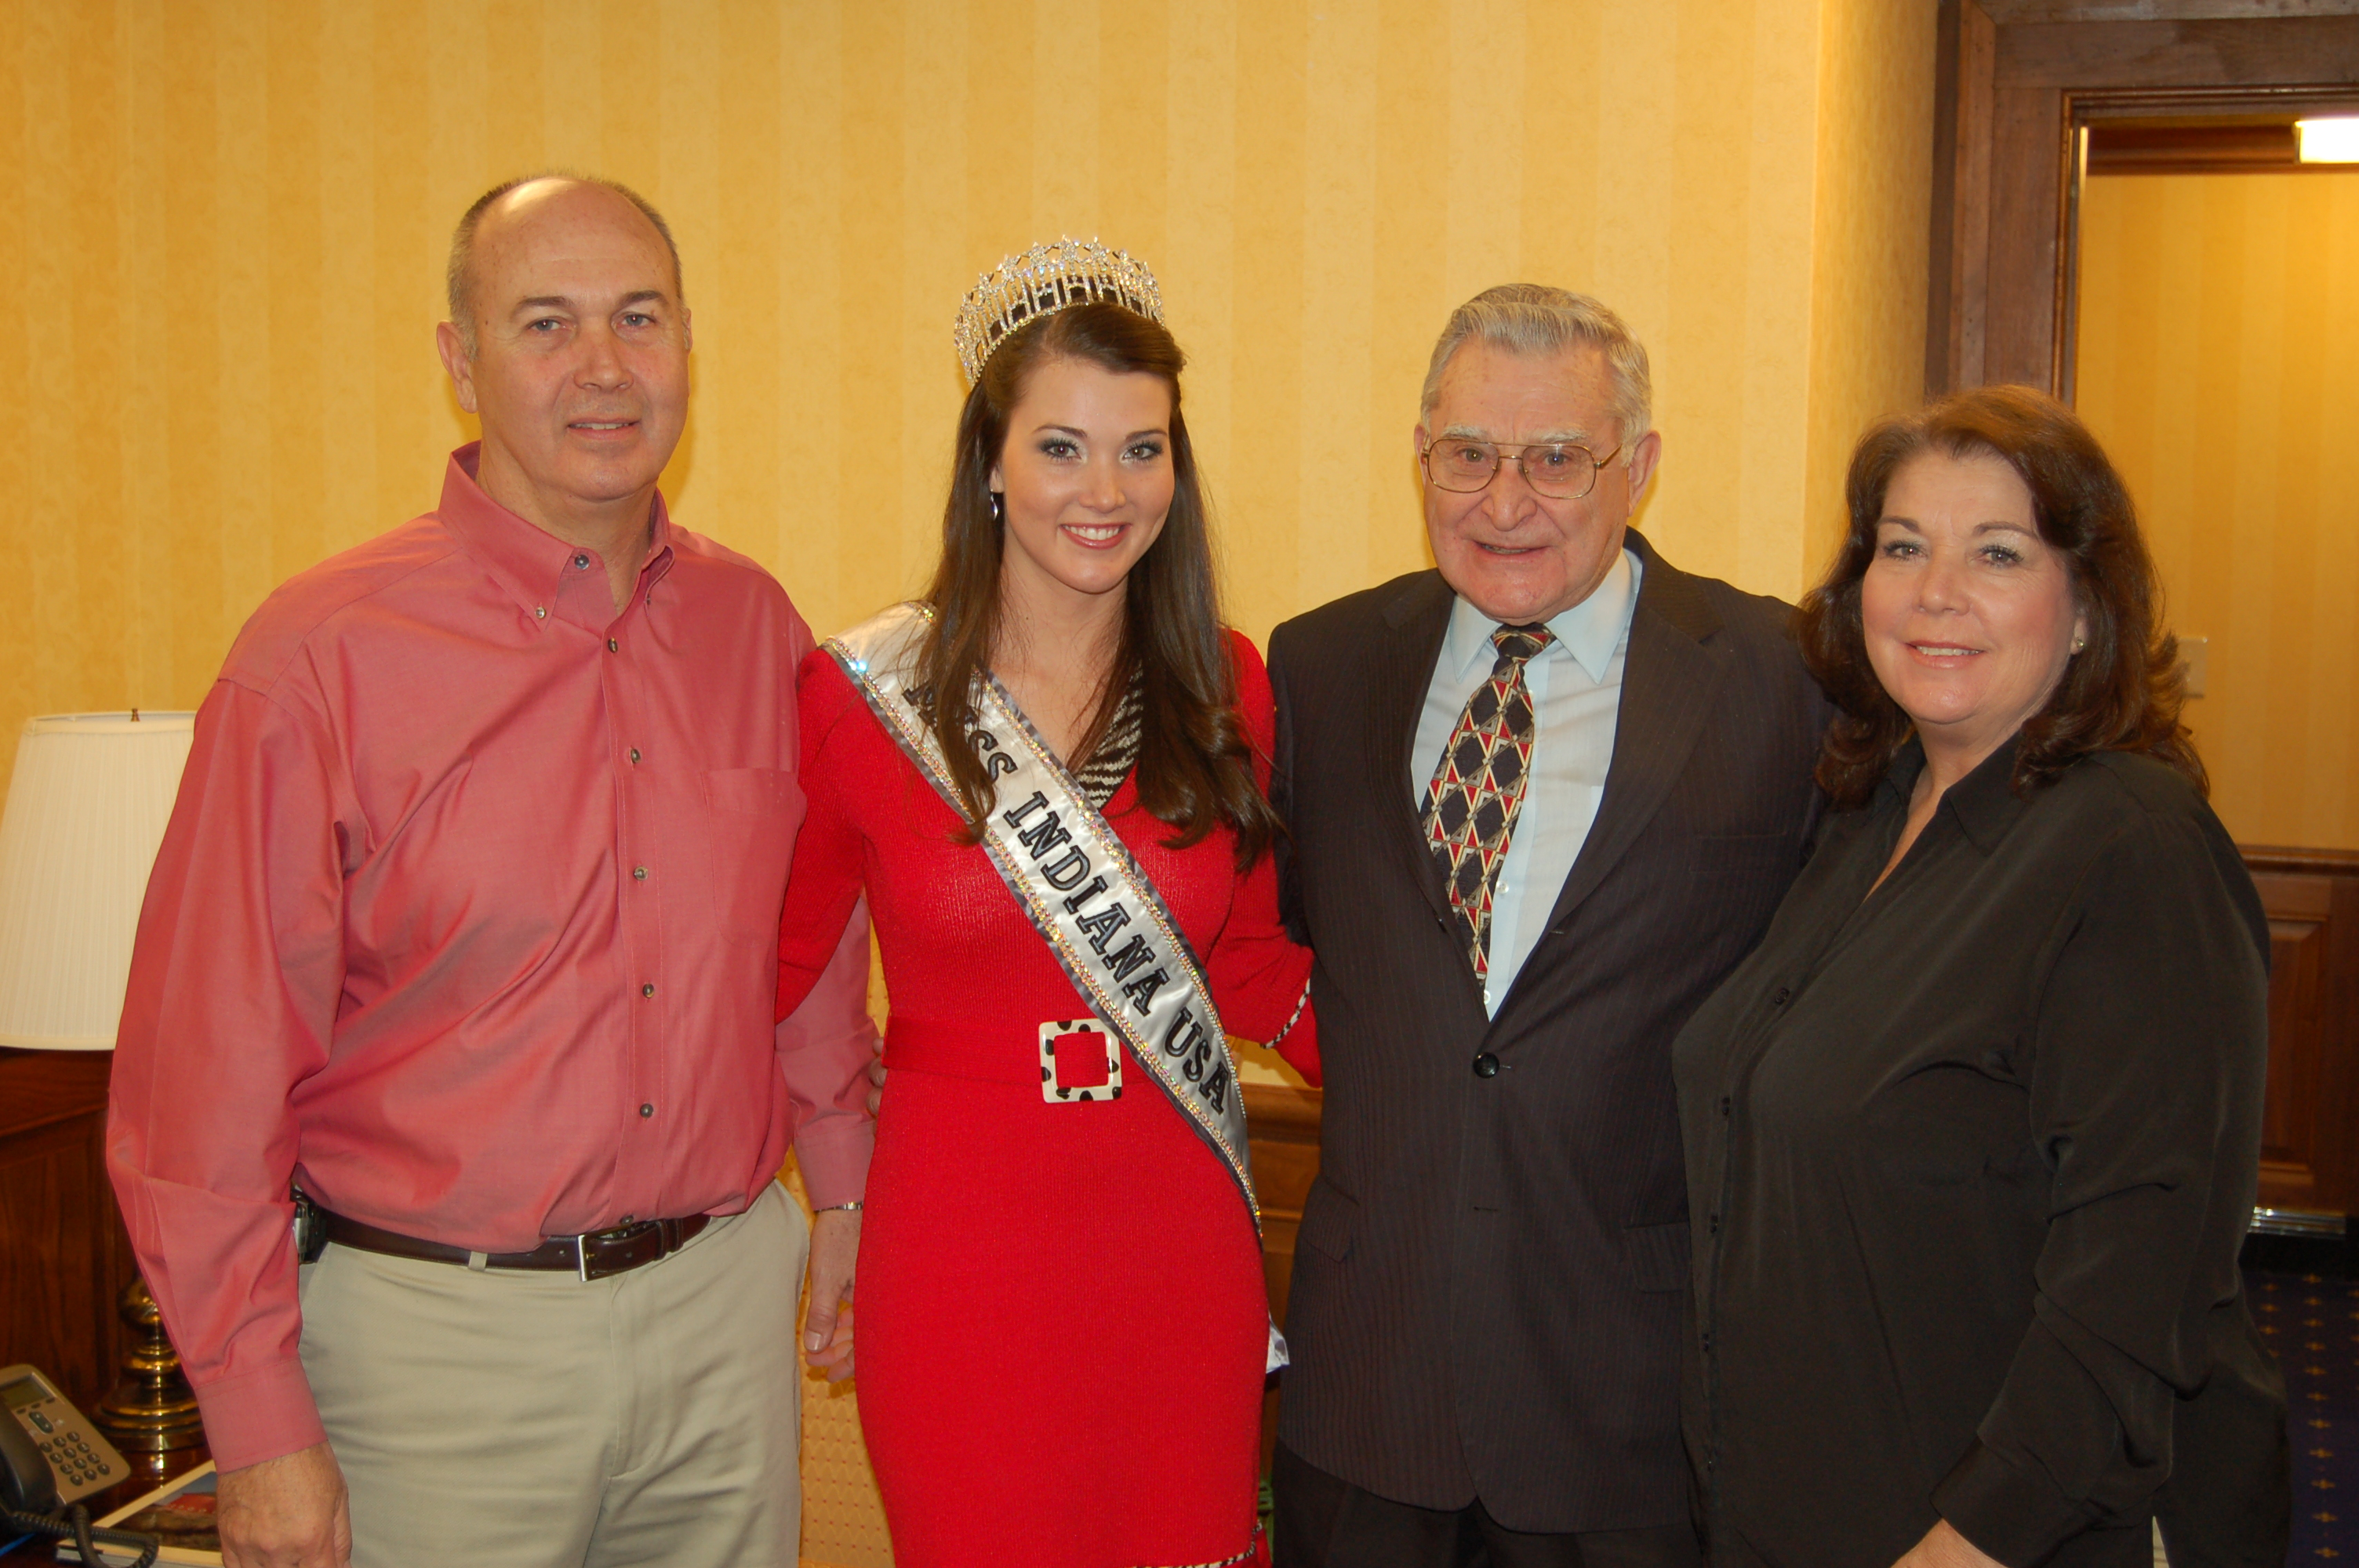 Senator Jim Lewis and Miss Indiana USA Allison Lynn Biehle